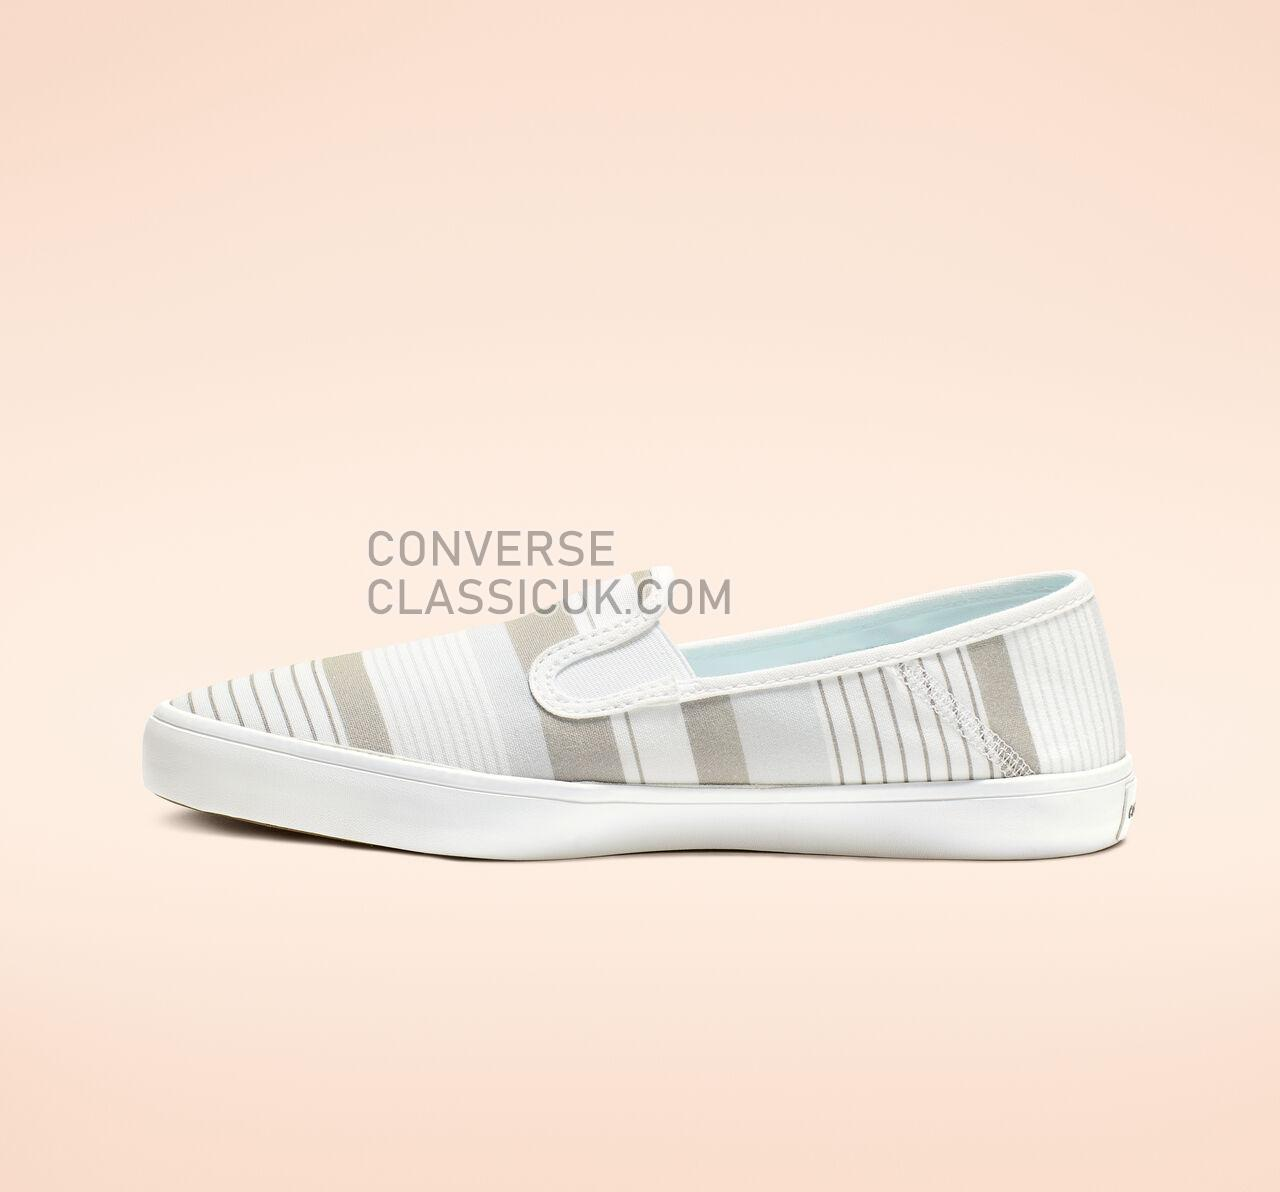 Converse Rio Summer Crush Slip Womens 564329F White/Papyrus/White Shoes